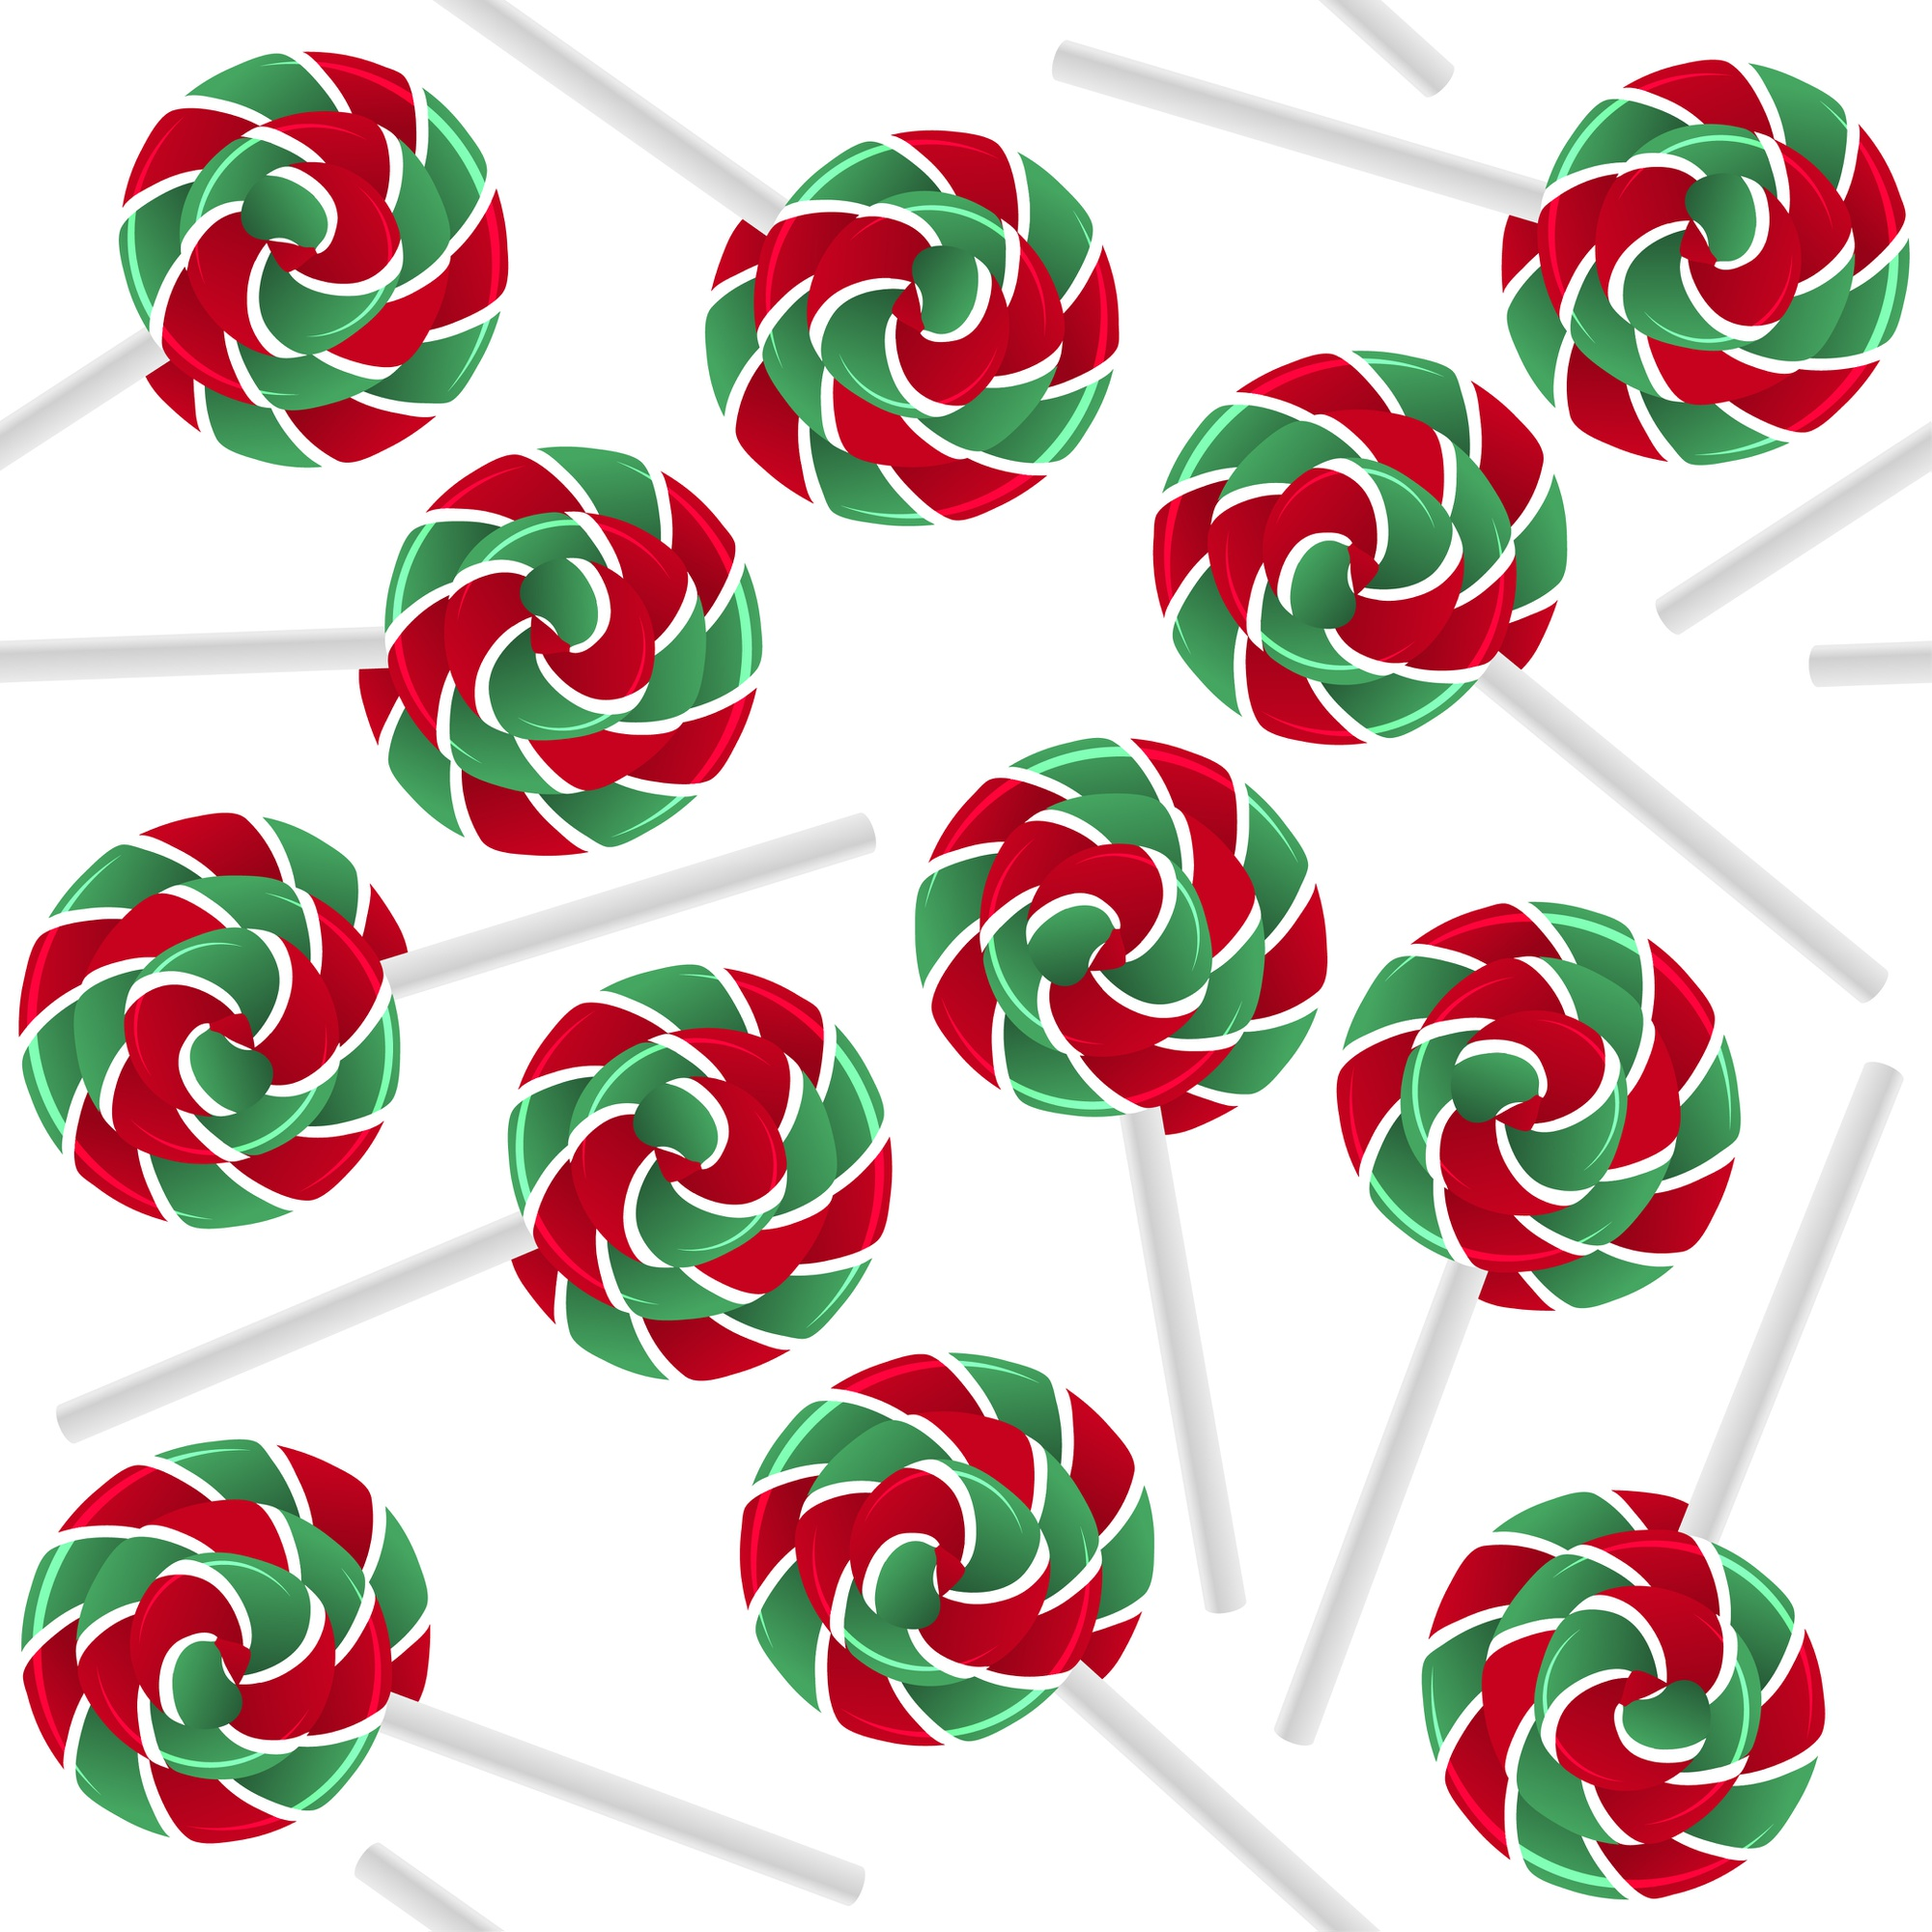 Colorful sweet lollipops seamless pattern. Candy red and green background.